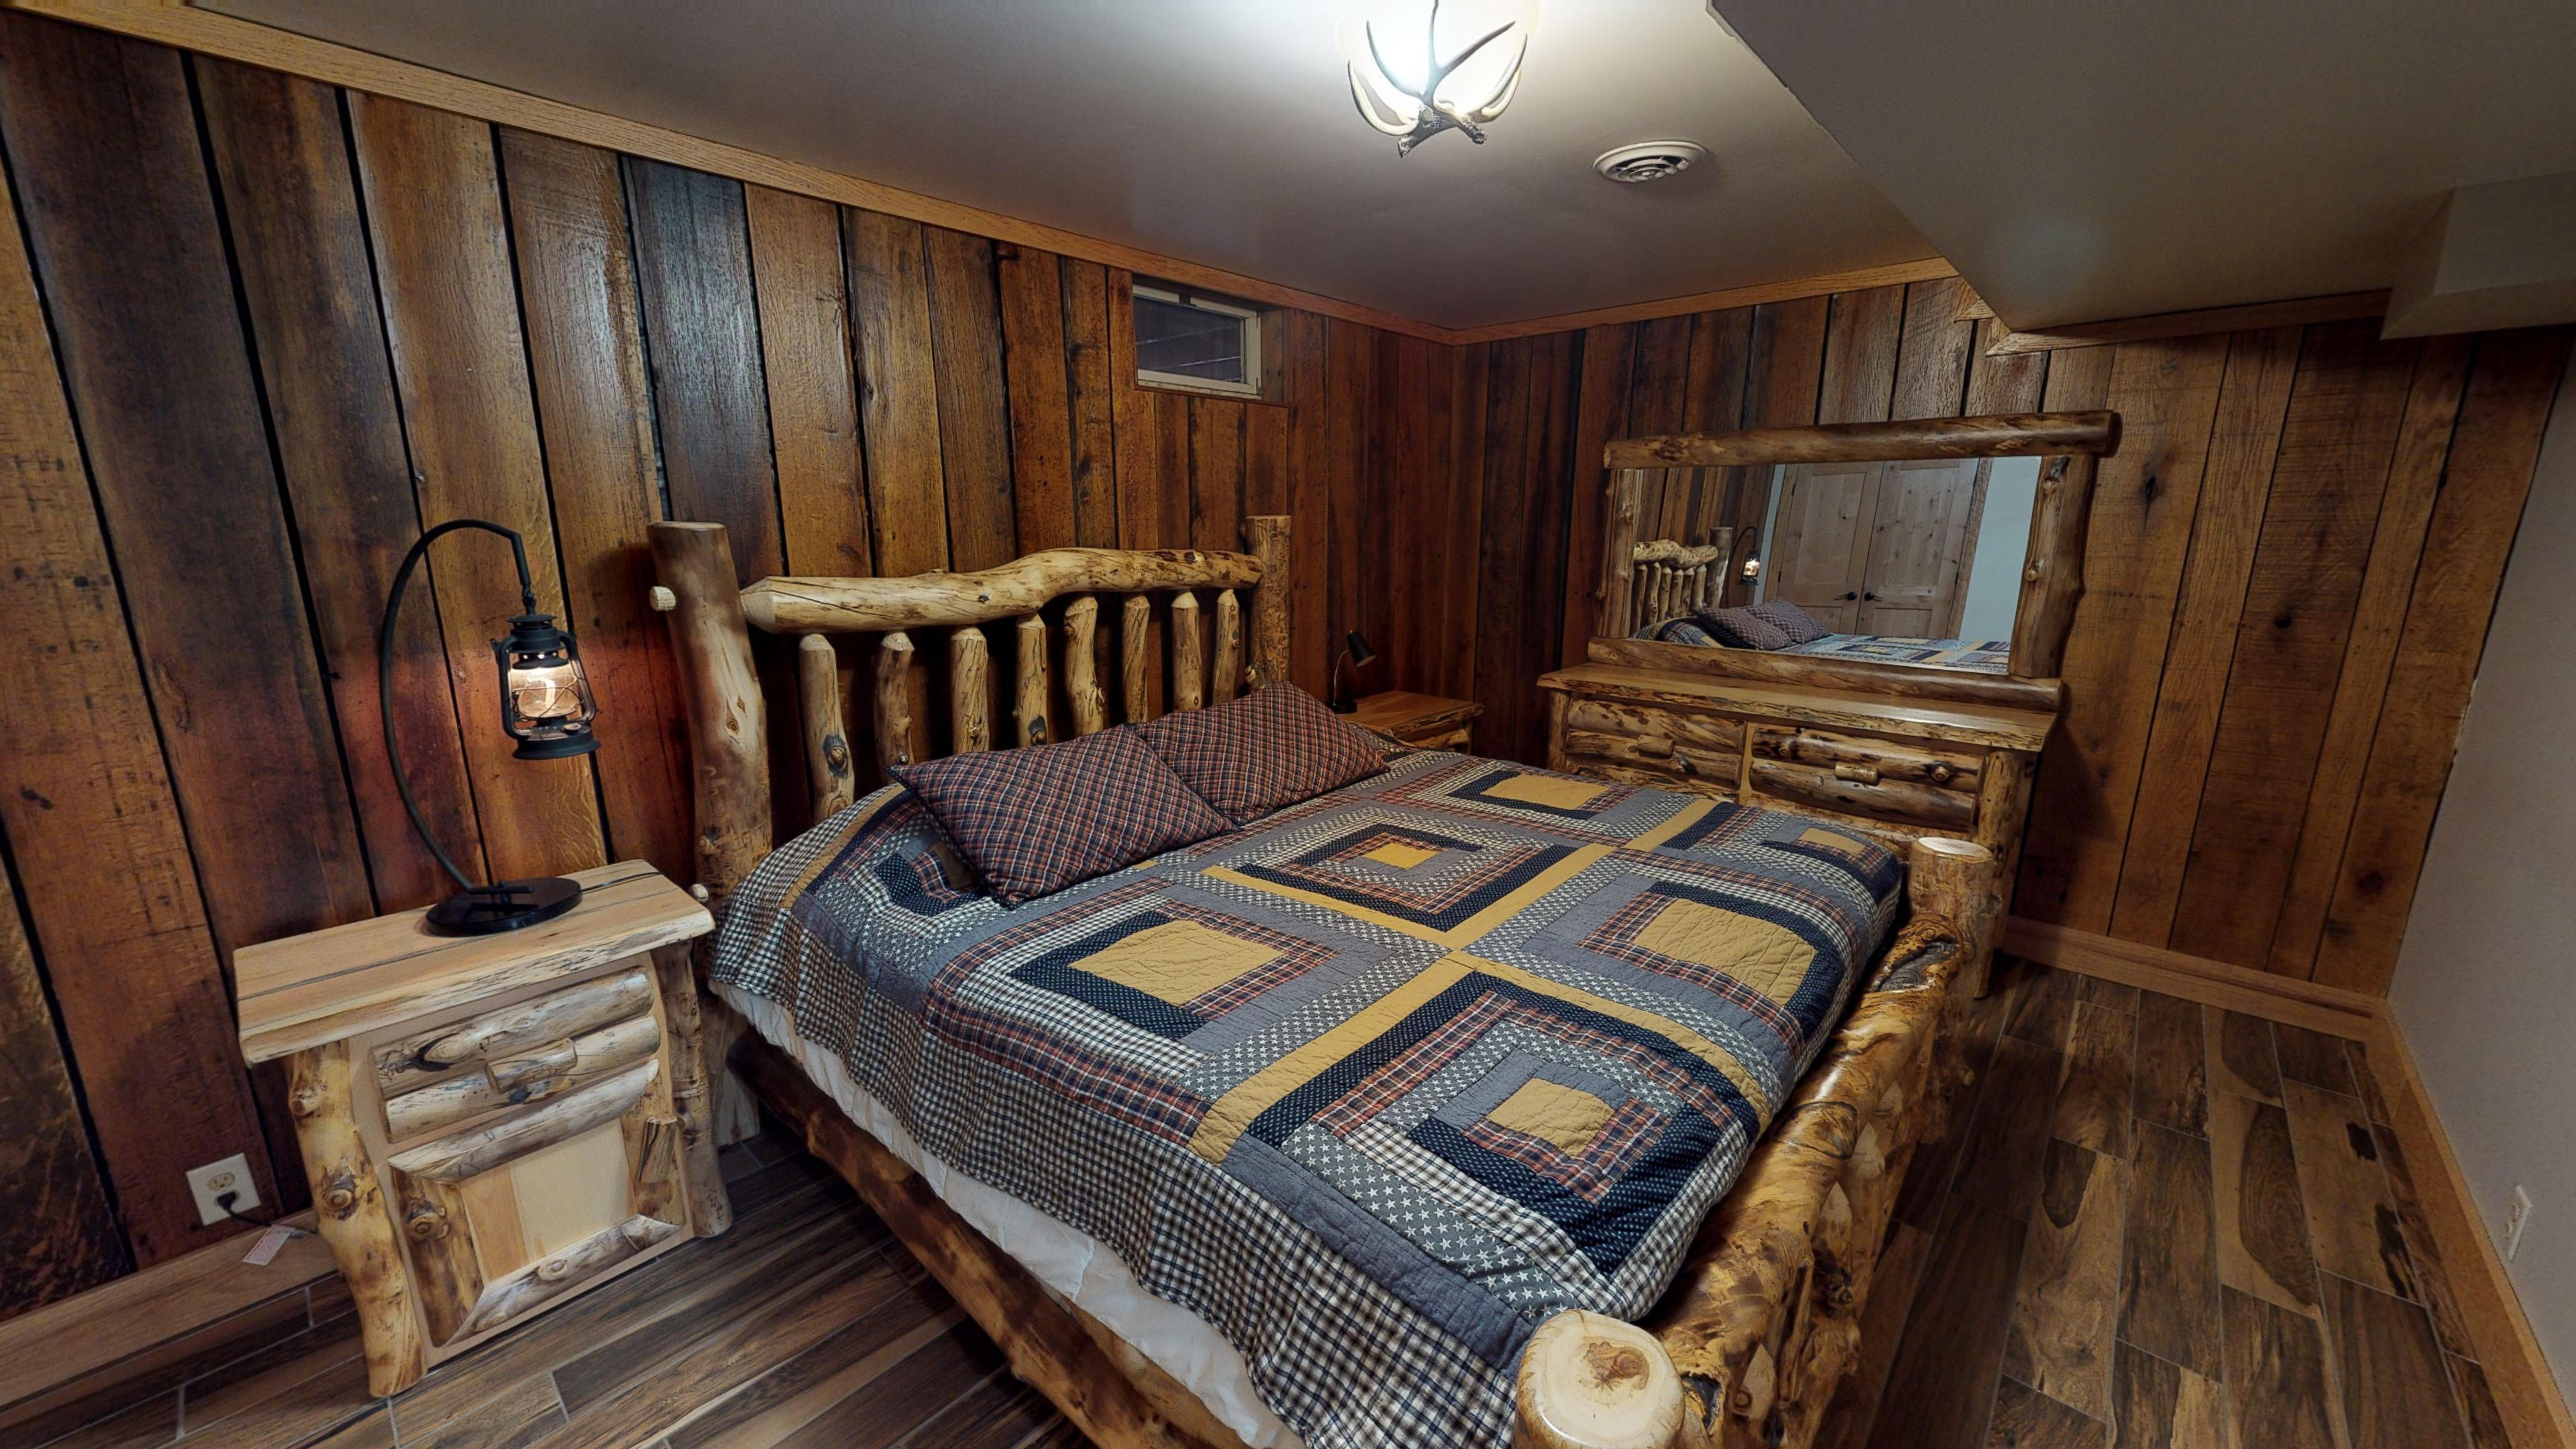 Photo 619_10242.jpg - One of three bedrooms that features log framed bed and matching dresser and night stand.